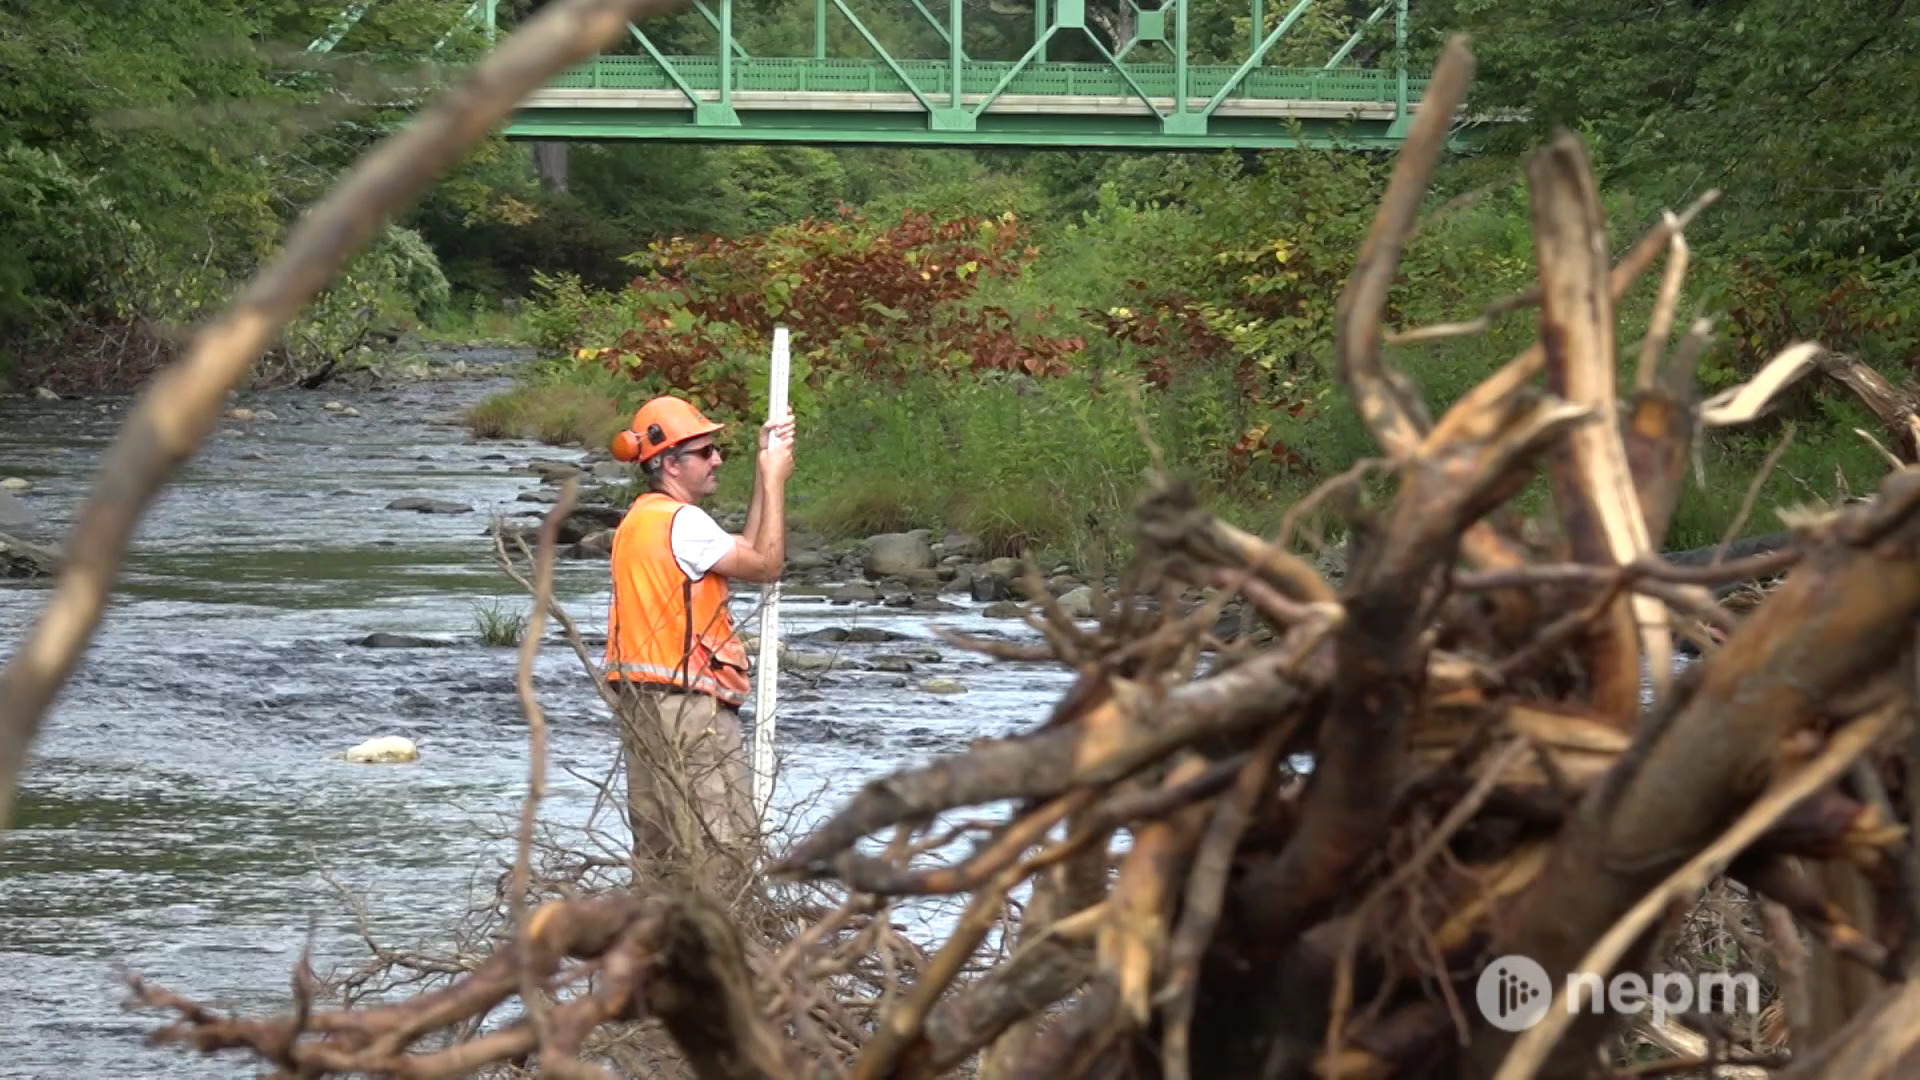 Brian Sullivan visits Colrain, where the North River is undergoing an ecosystem restoration to cleanup some of the destruction caused by Hurricane Irene.